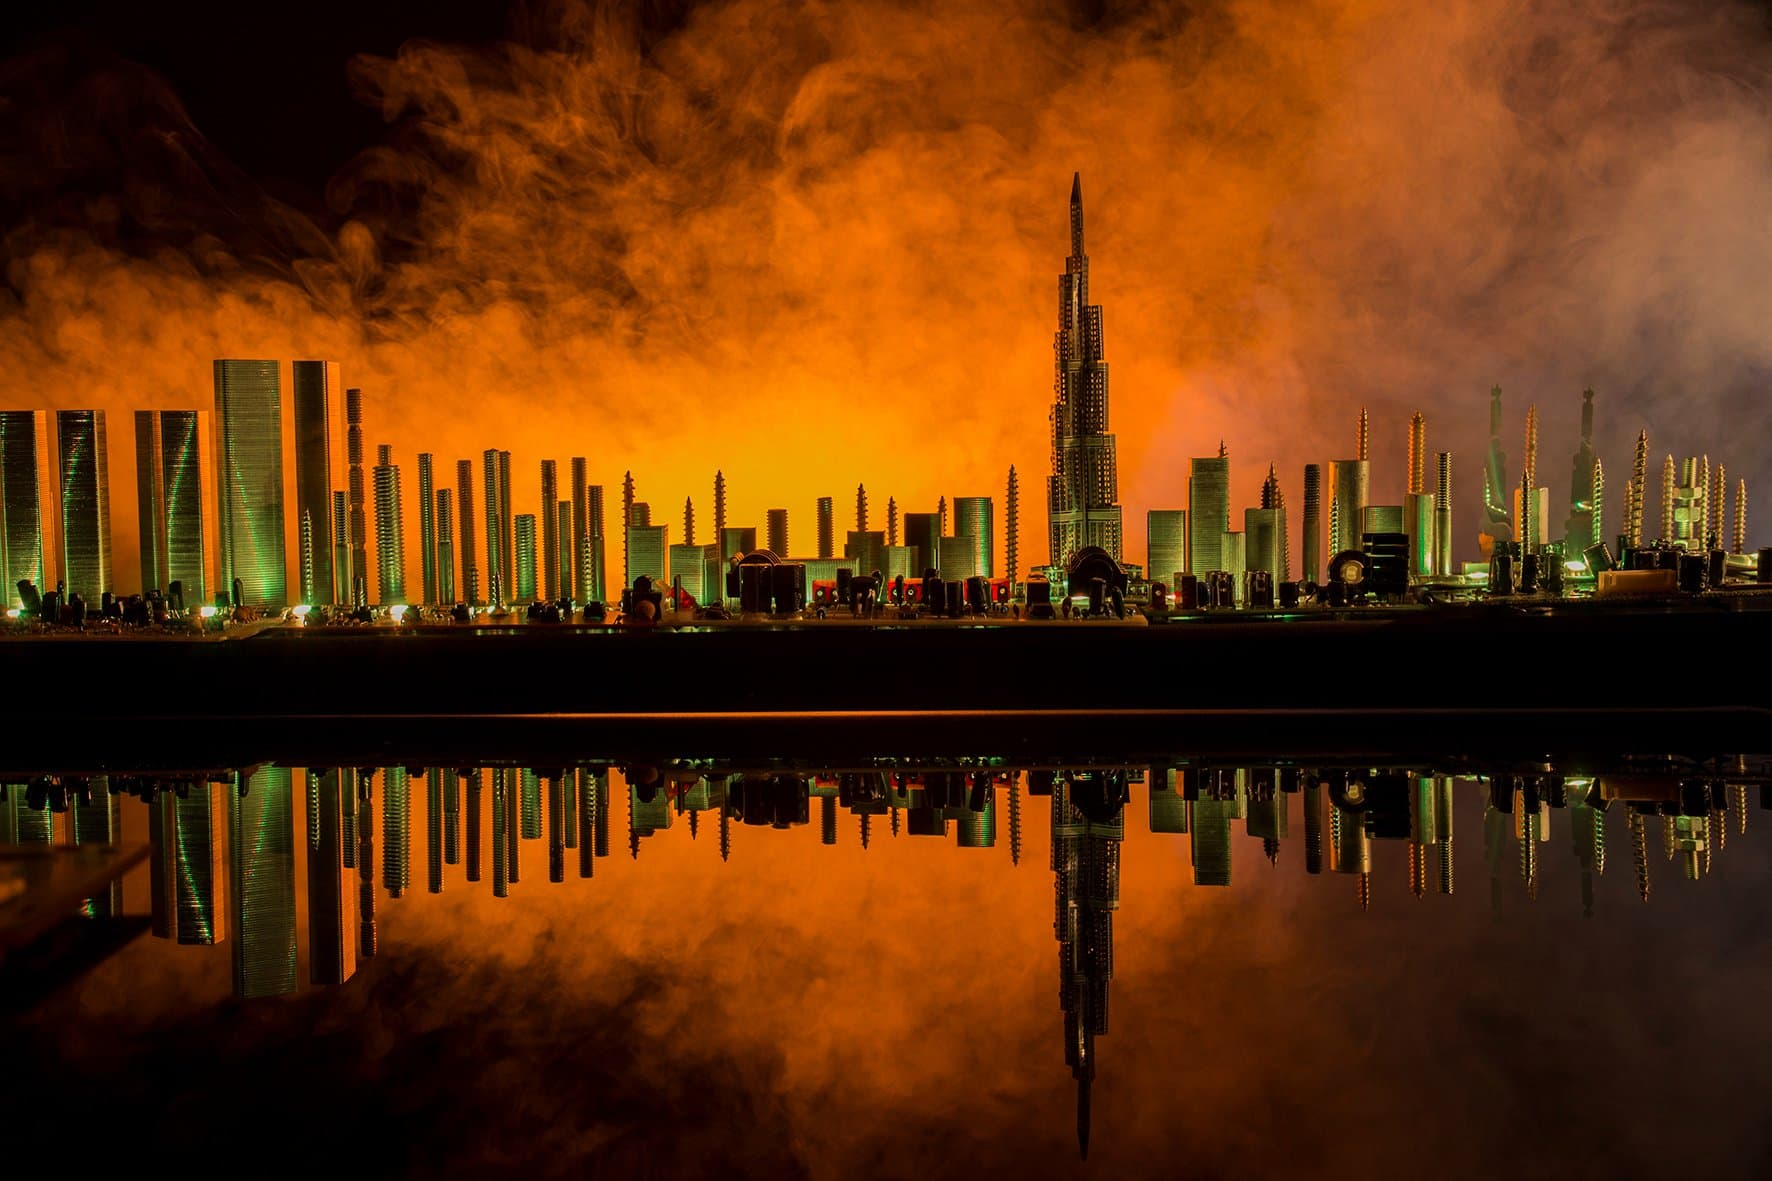 Dubai on fire background